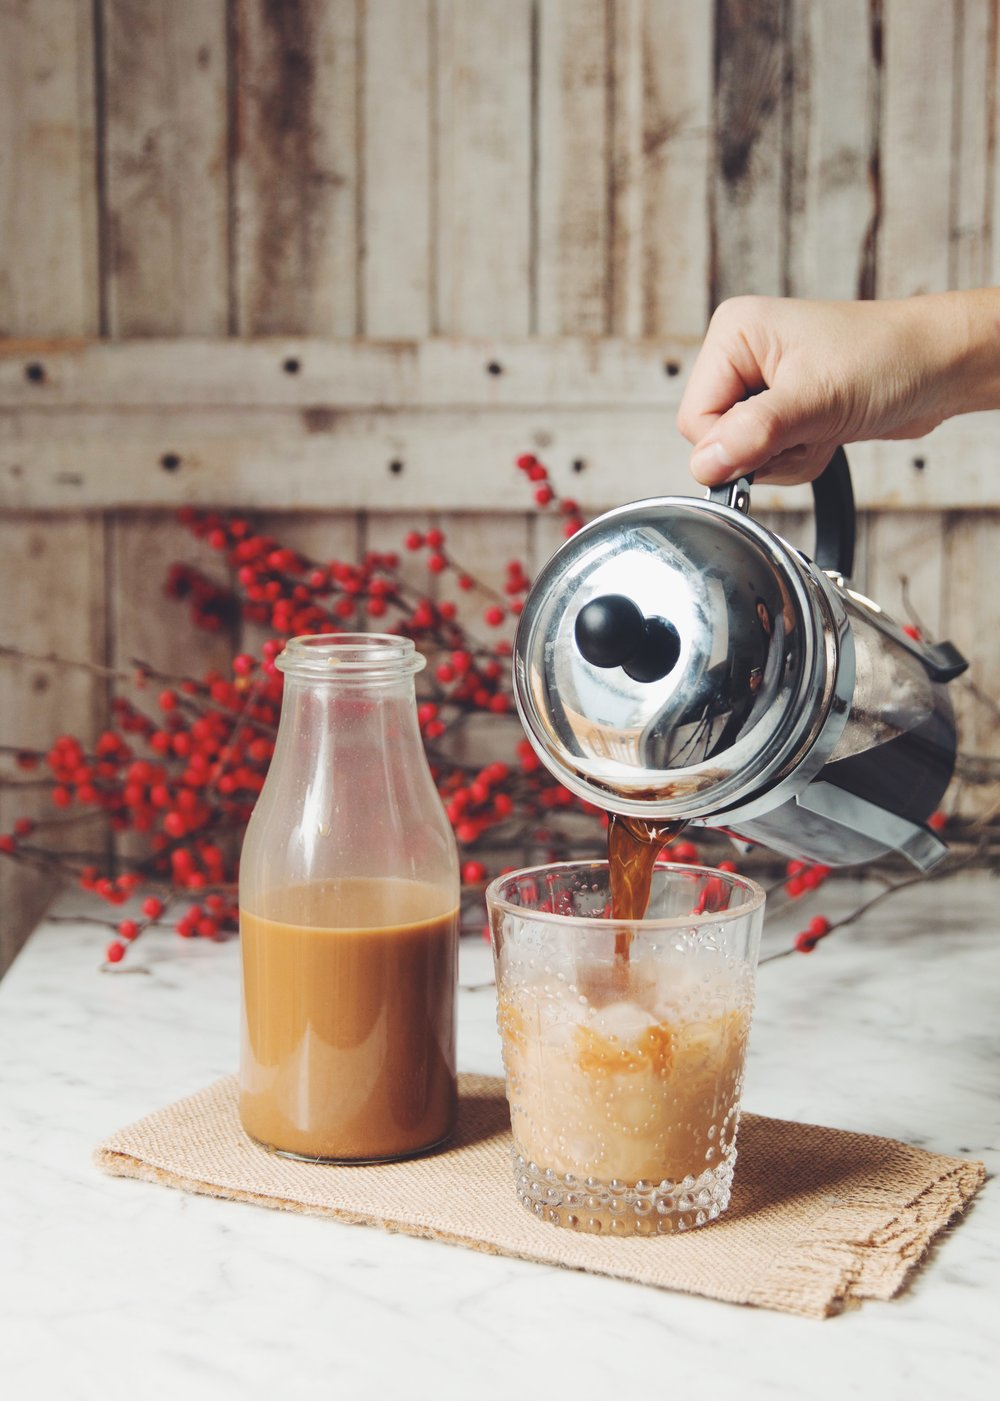 vegan baileys irish cream | RECIPE on hotforfoodblog.com